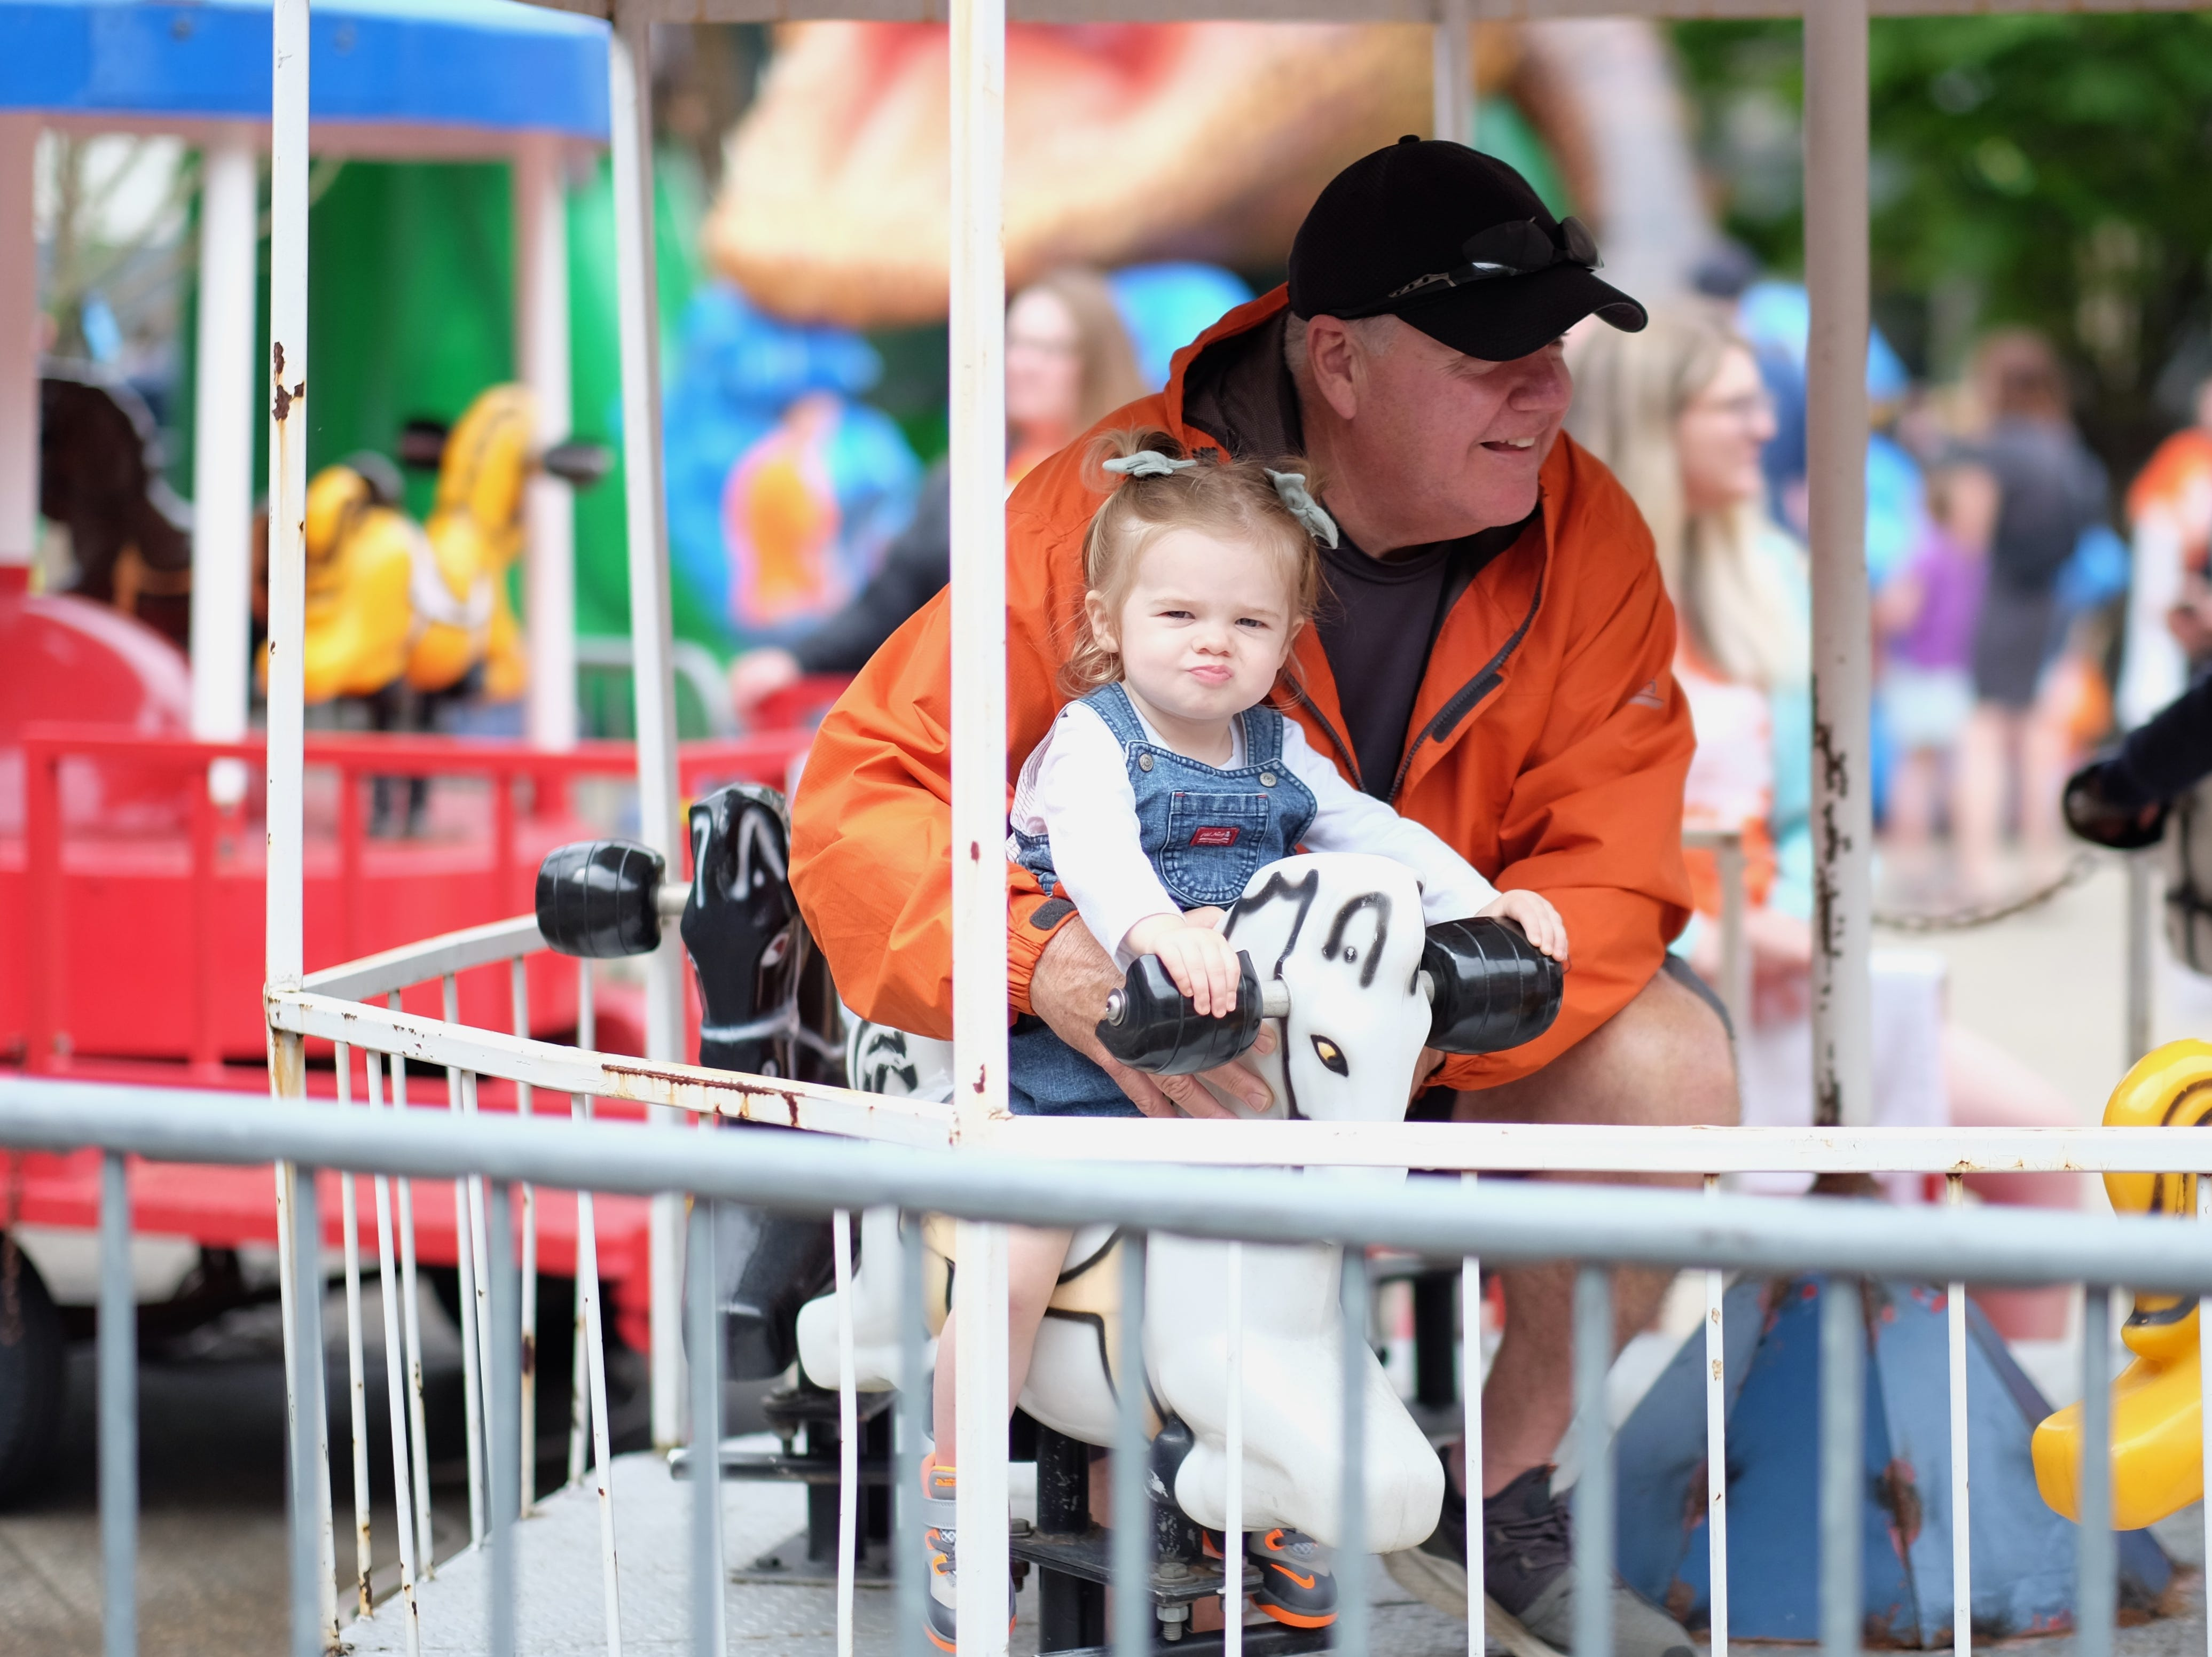 Mike Smith rides the carousel with his granddaughter Halli Smith, 1, during the Rossini Festival in Knoxville on Saturday, April 13, 2019. 